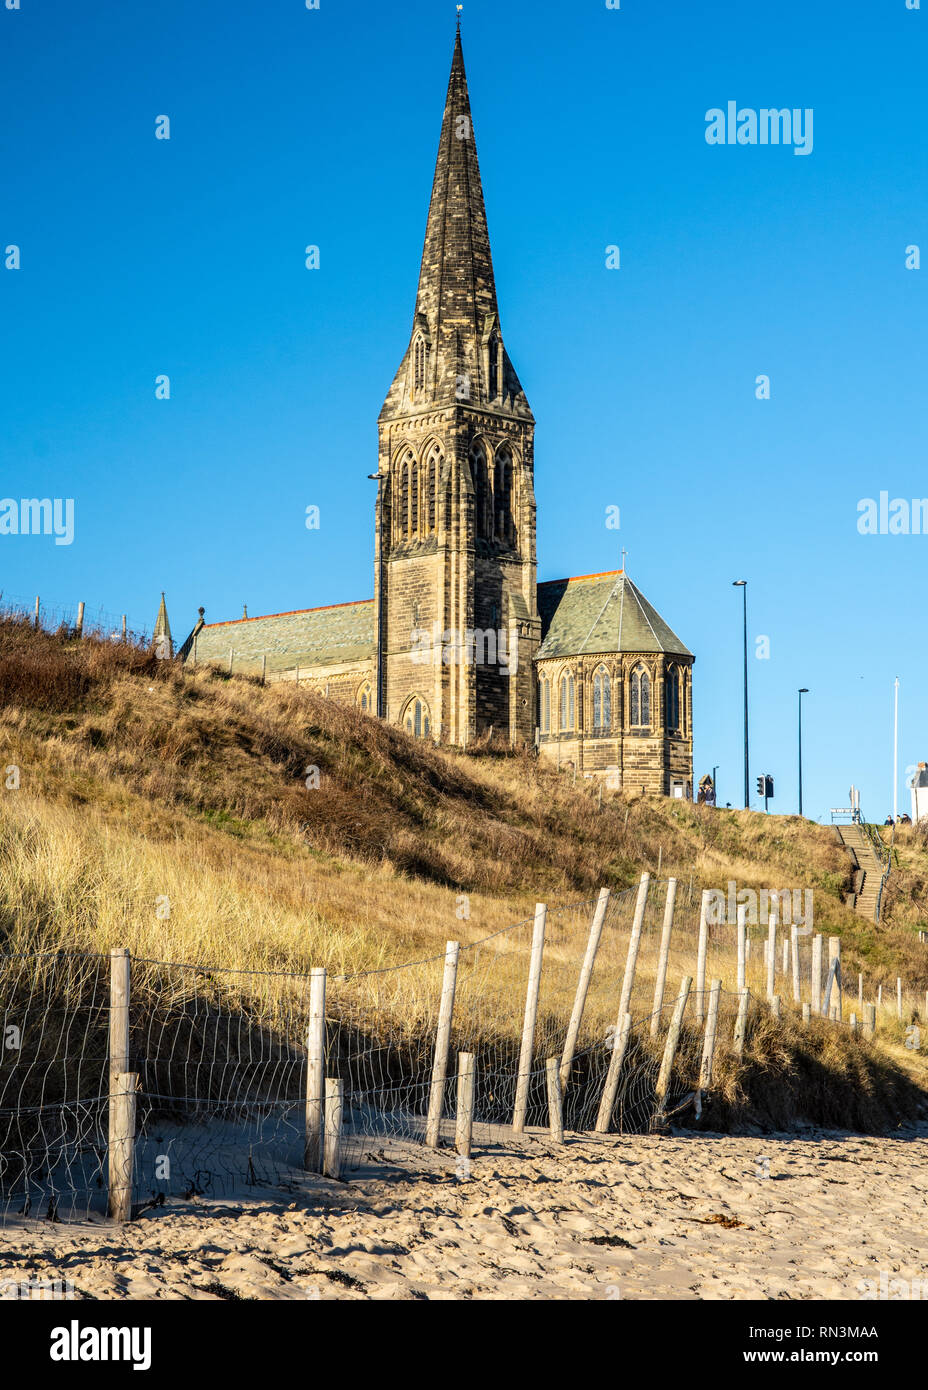 St George's Church spire rises above the sandy beach of Tynemouth Longsands at Cullercoats in Tyneside. - Stock Image